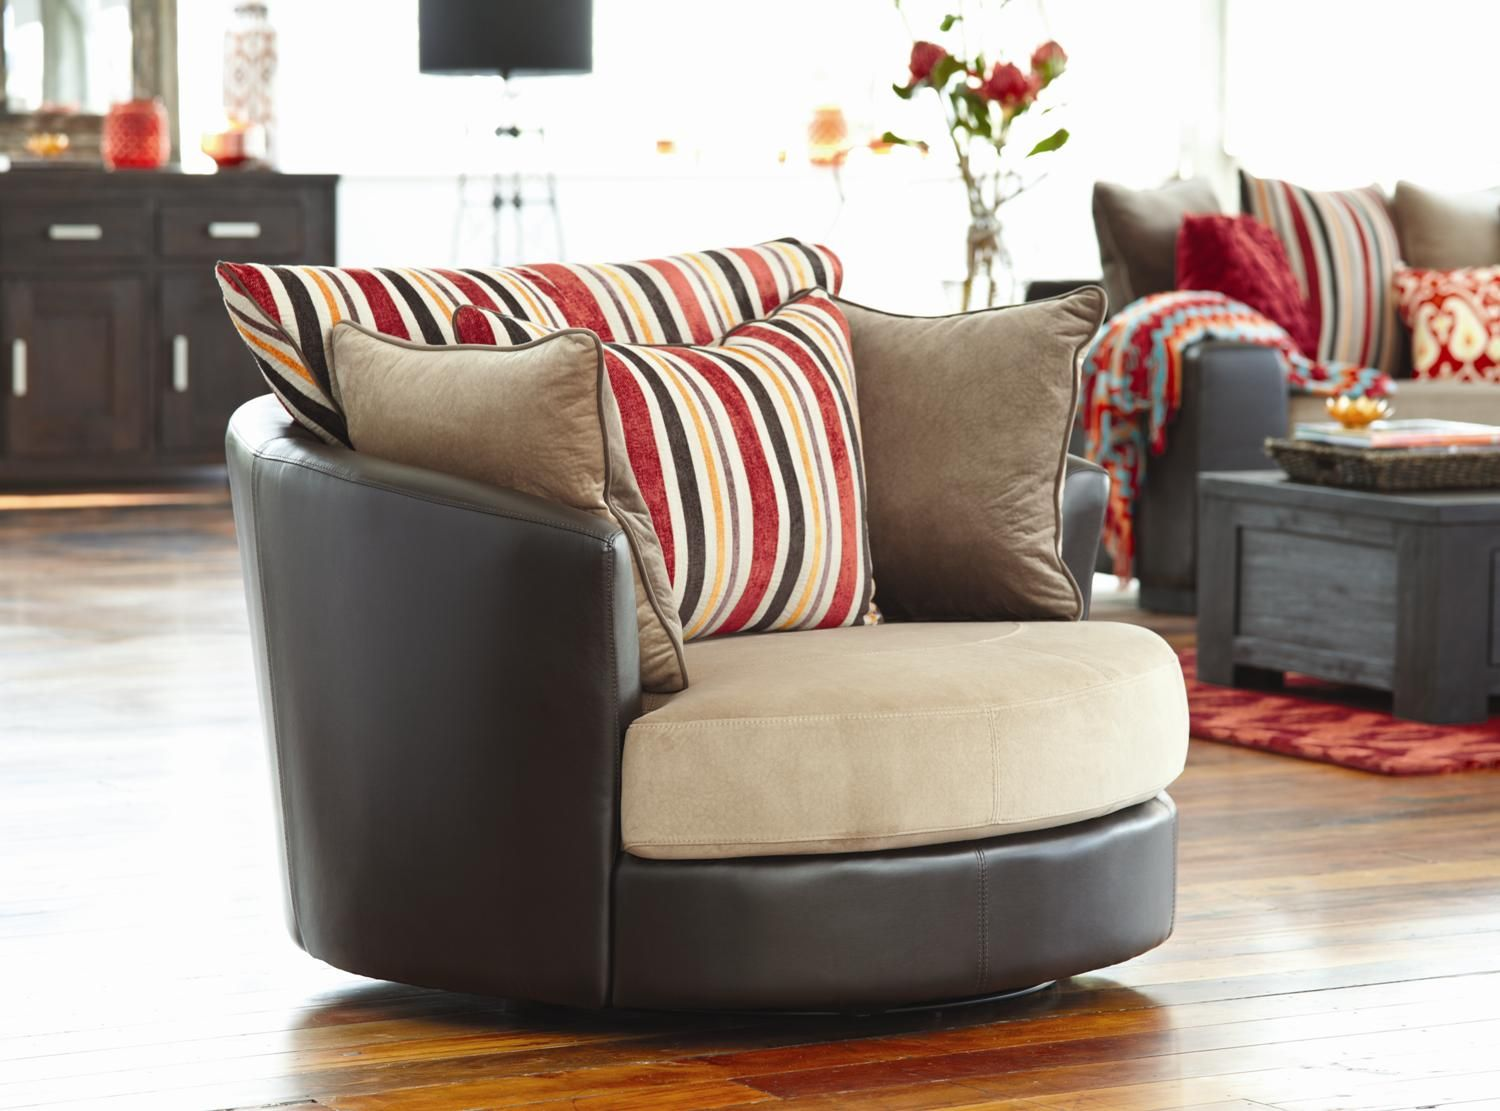 Boston Swivel Chair Small From Harvey Norman New Zealand With